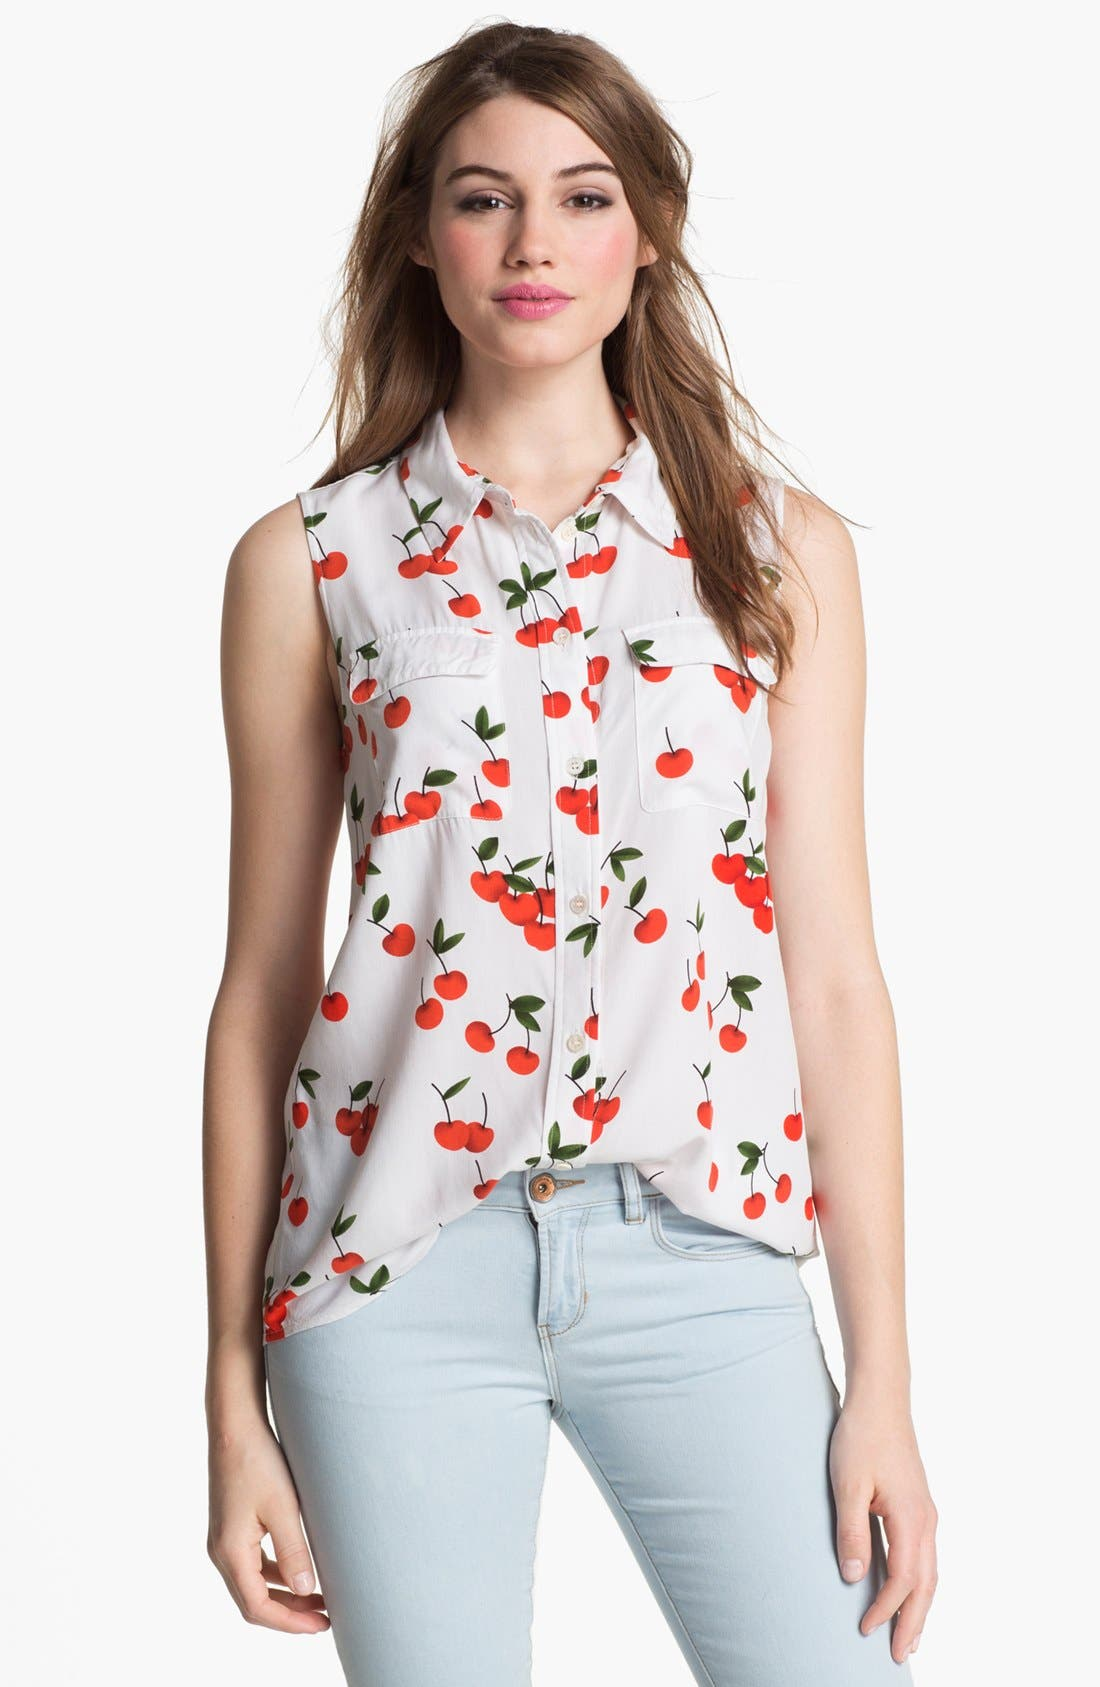 Alternate Image 1 Selected - Two by Vince Camuto Print Sleeveless Shirt